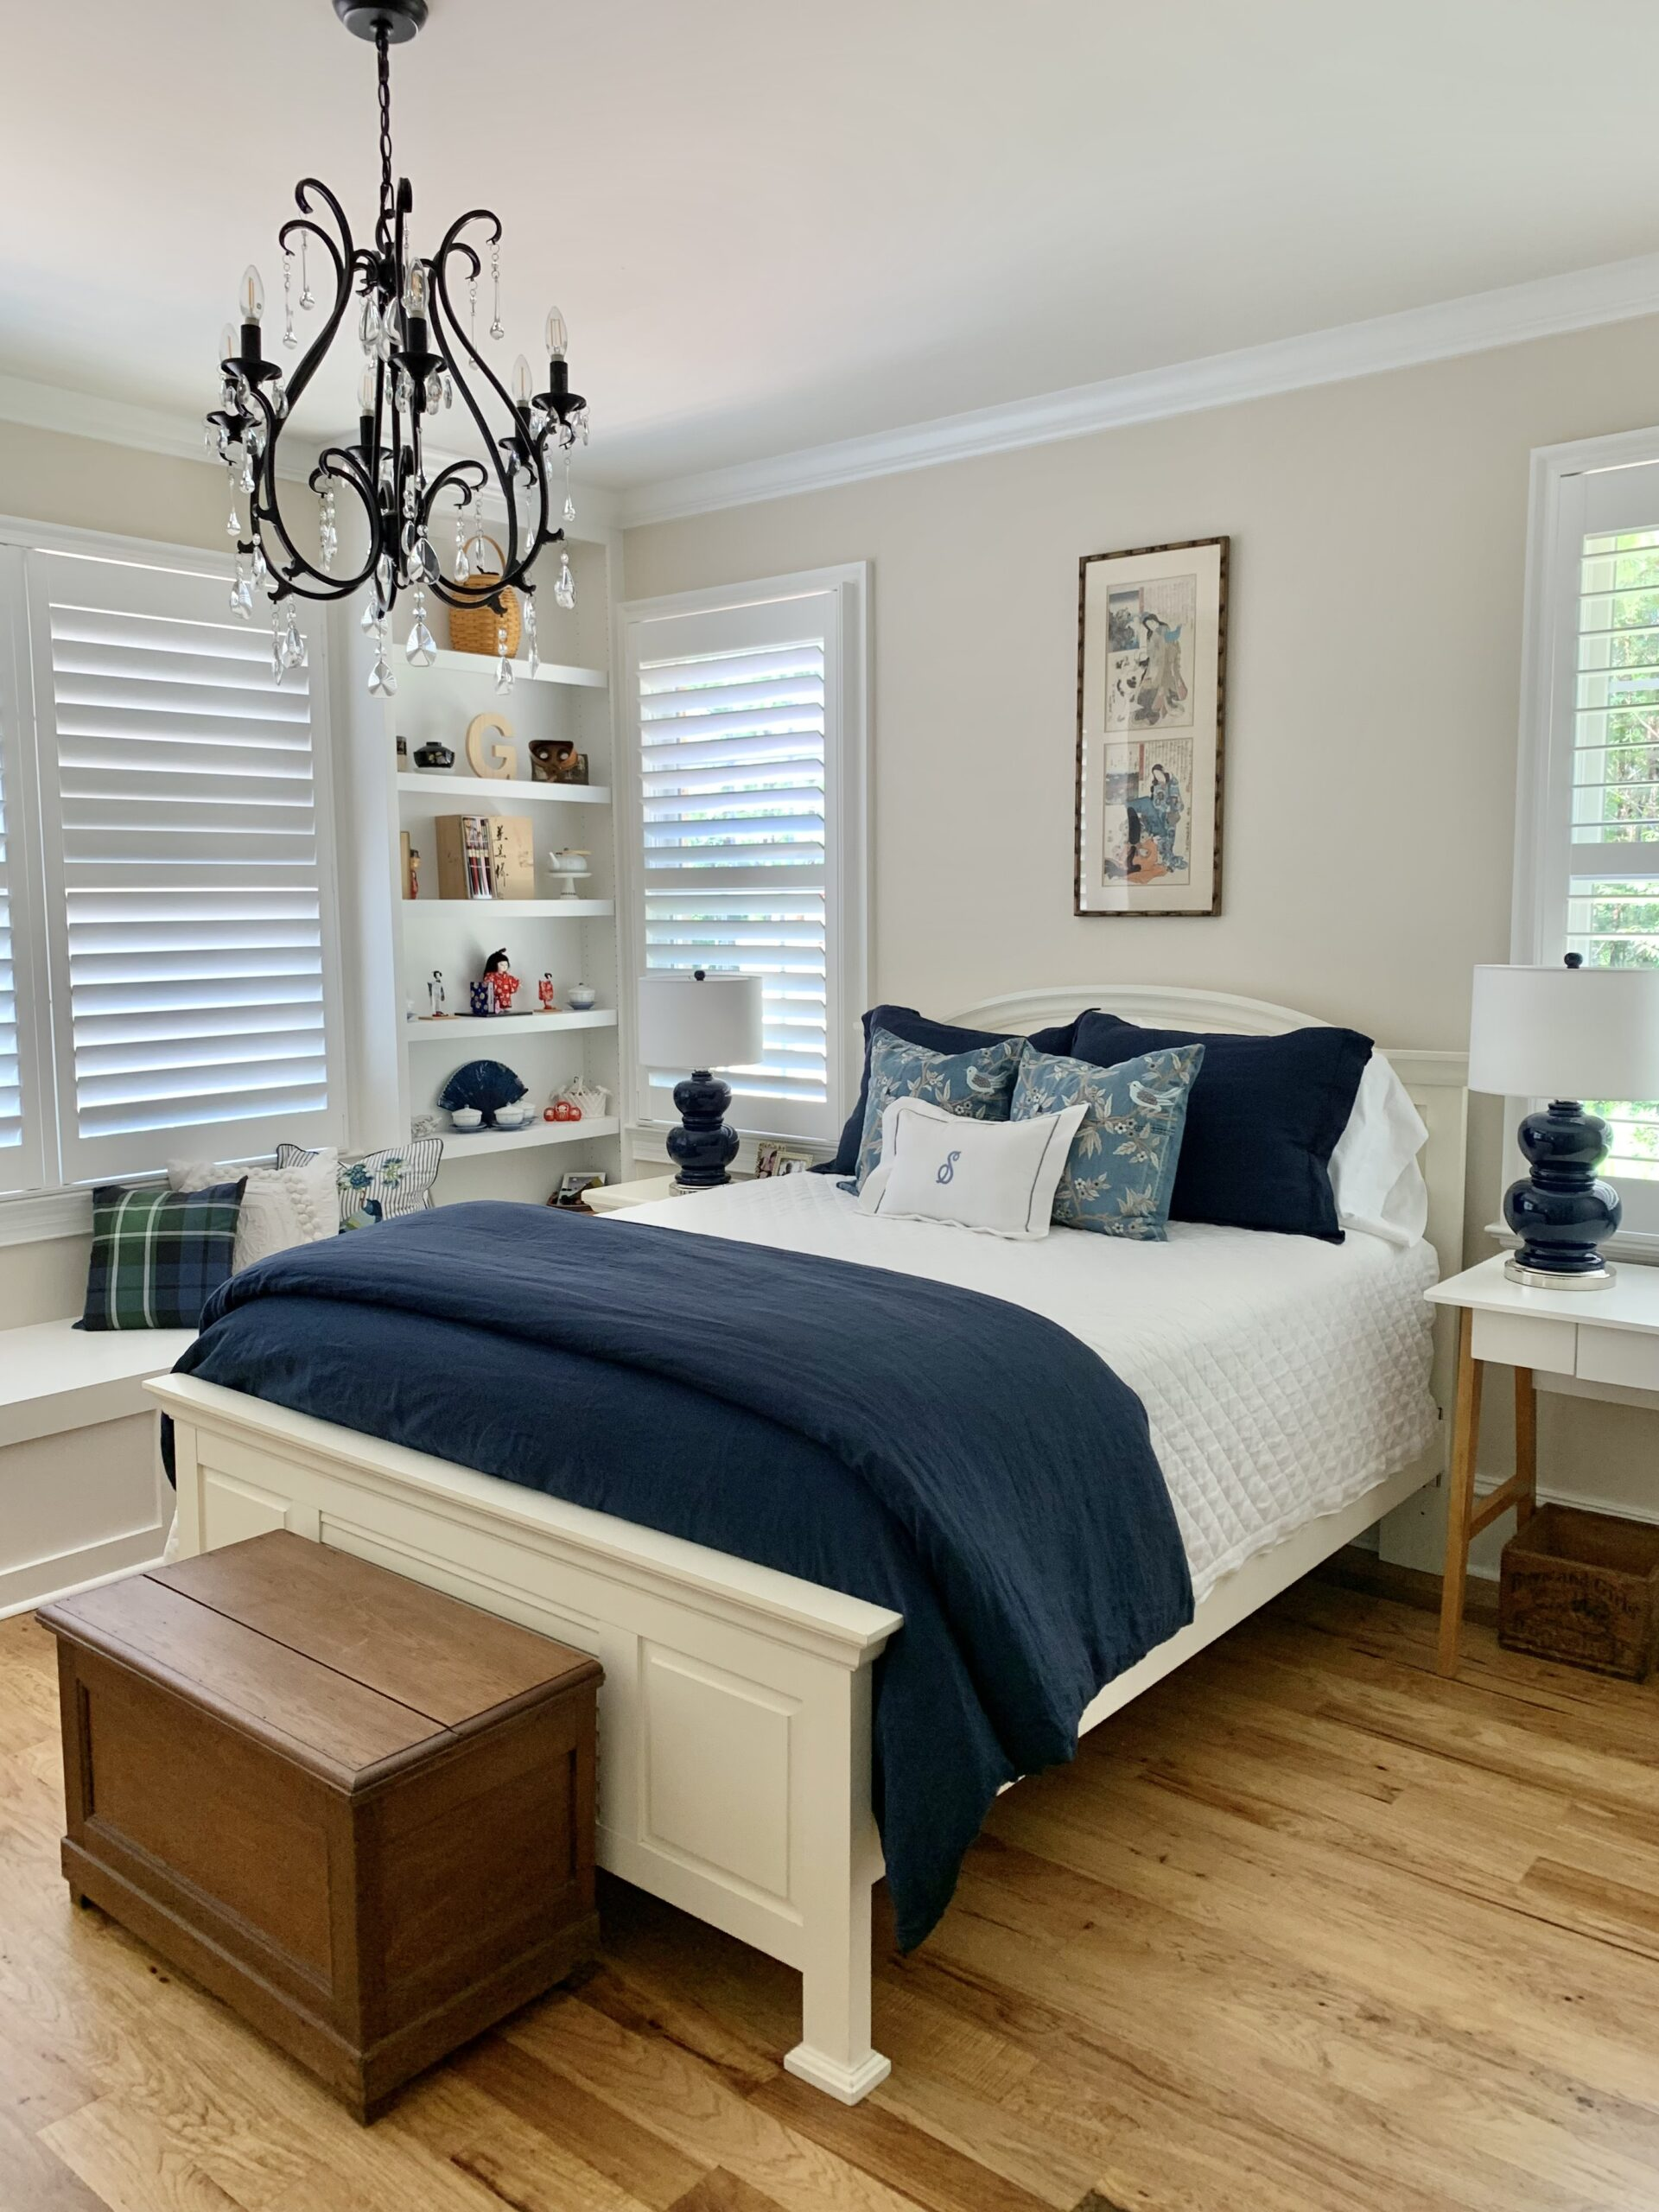 French country home tour granddaughter's room